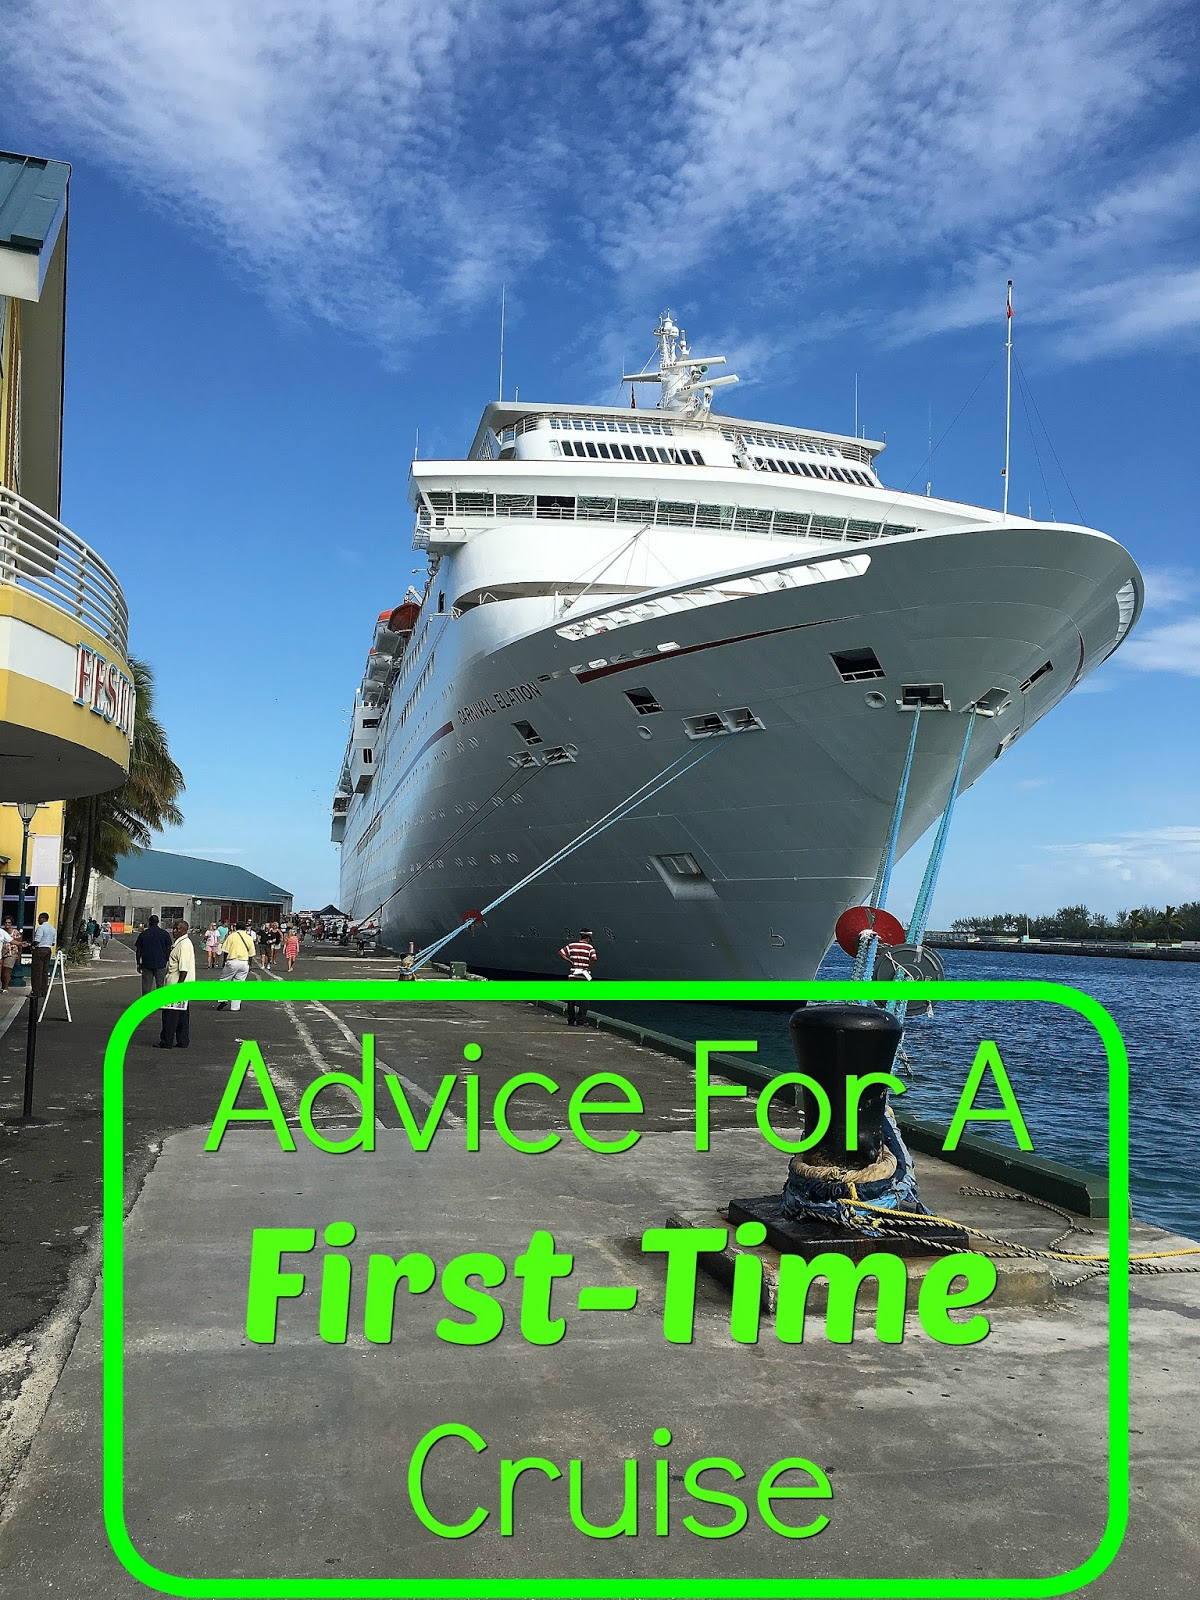 Meet the Shaneyfelts: Advice for a First-Time Cruise